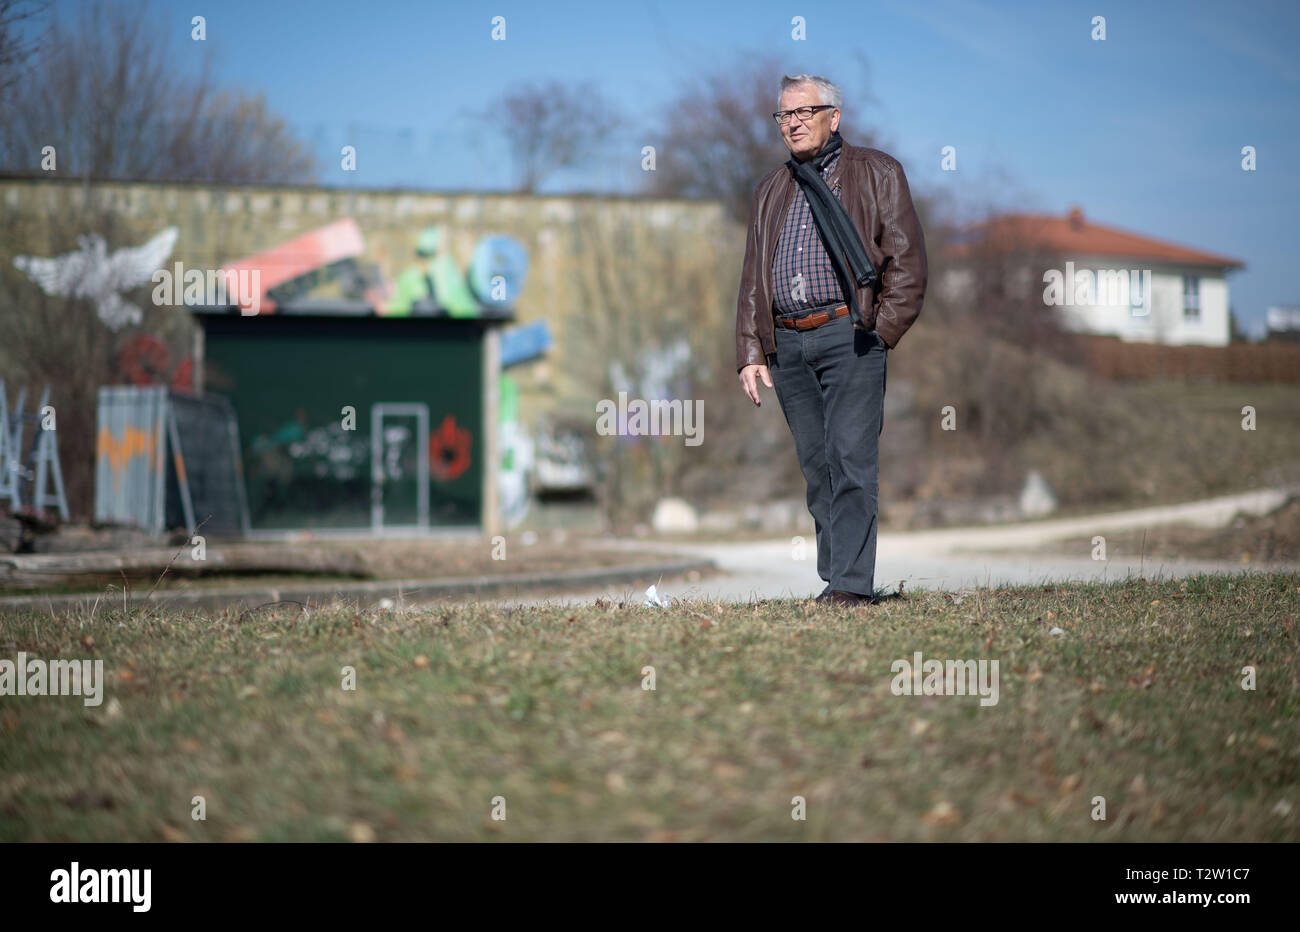 Mutlangen, Germany. 28th Feb, 2019. Peter Seyfried, former mayor of Mutlangen, stands at the edge of the residential area Mutlanger Heide in front of a bunker. Before being converted into a residential area, the site served as a missile base on which US medium-range nuclear missiles of the Pershing II type were stationed. (to dpa: 'No, no, Njet' - The Eastern Alb sends peace signals again) Credit: Marijan Murat/dpa/Alamy Live News - Stock Image